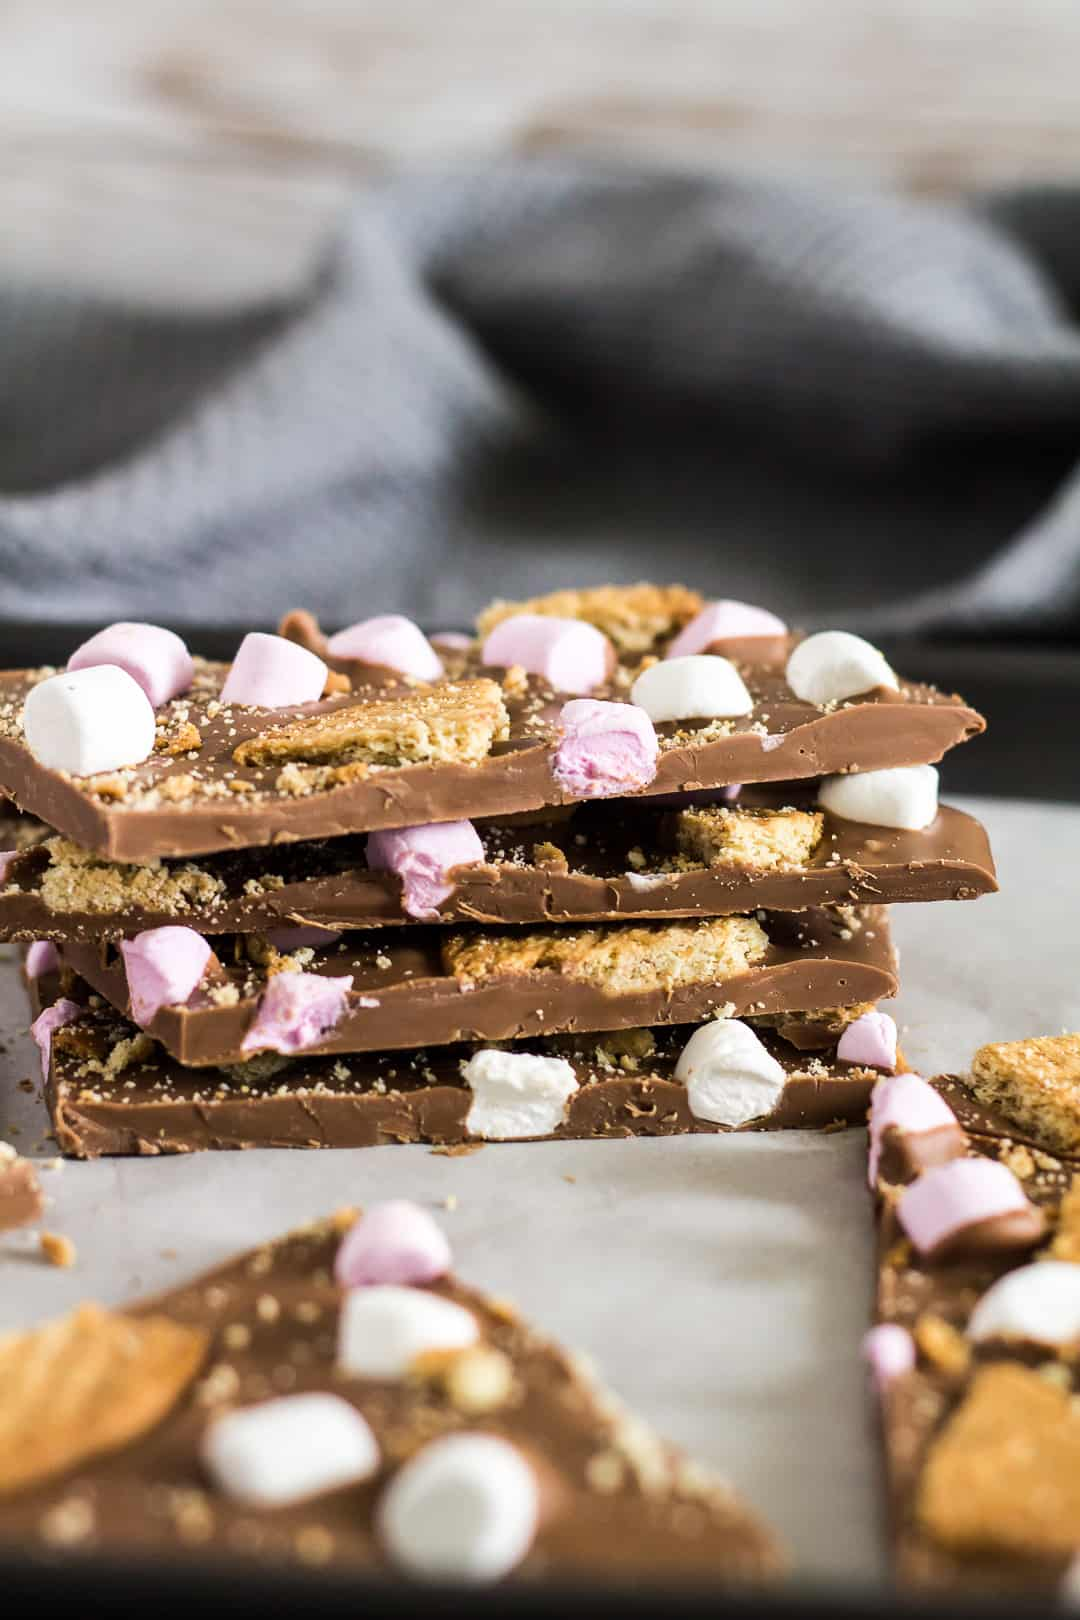 A stack of four pieces of S'mores Chocolate Bark on a baking tray.